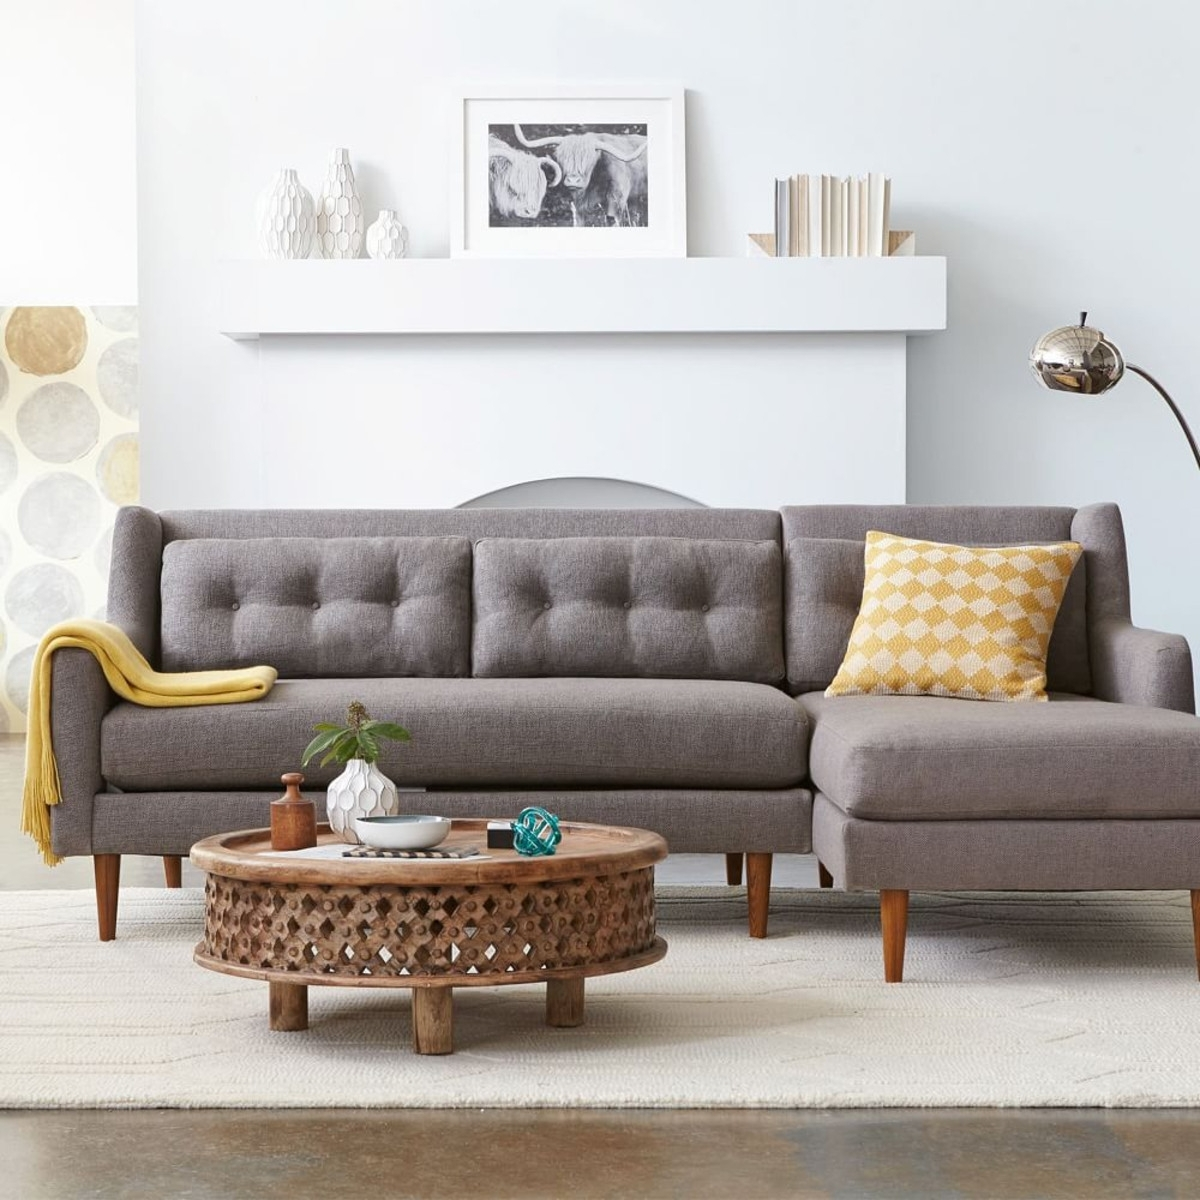 West Elm Sectional Sofa In West Elm Sectional Sofas (View 1 of 10)